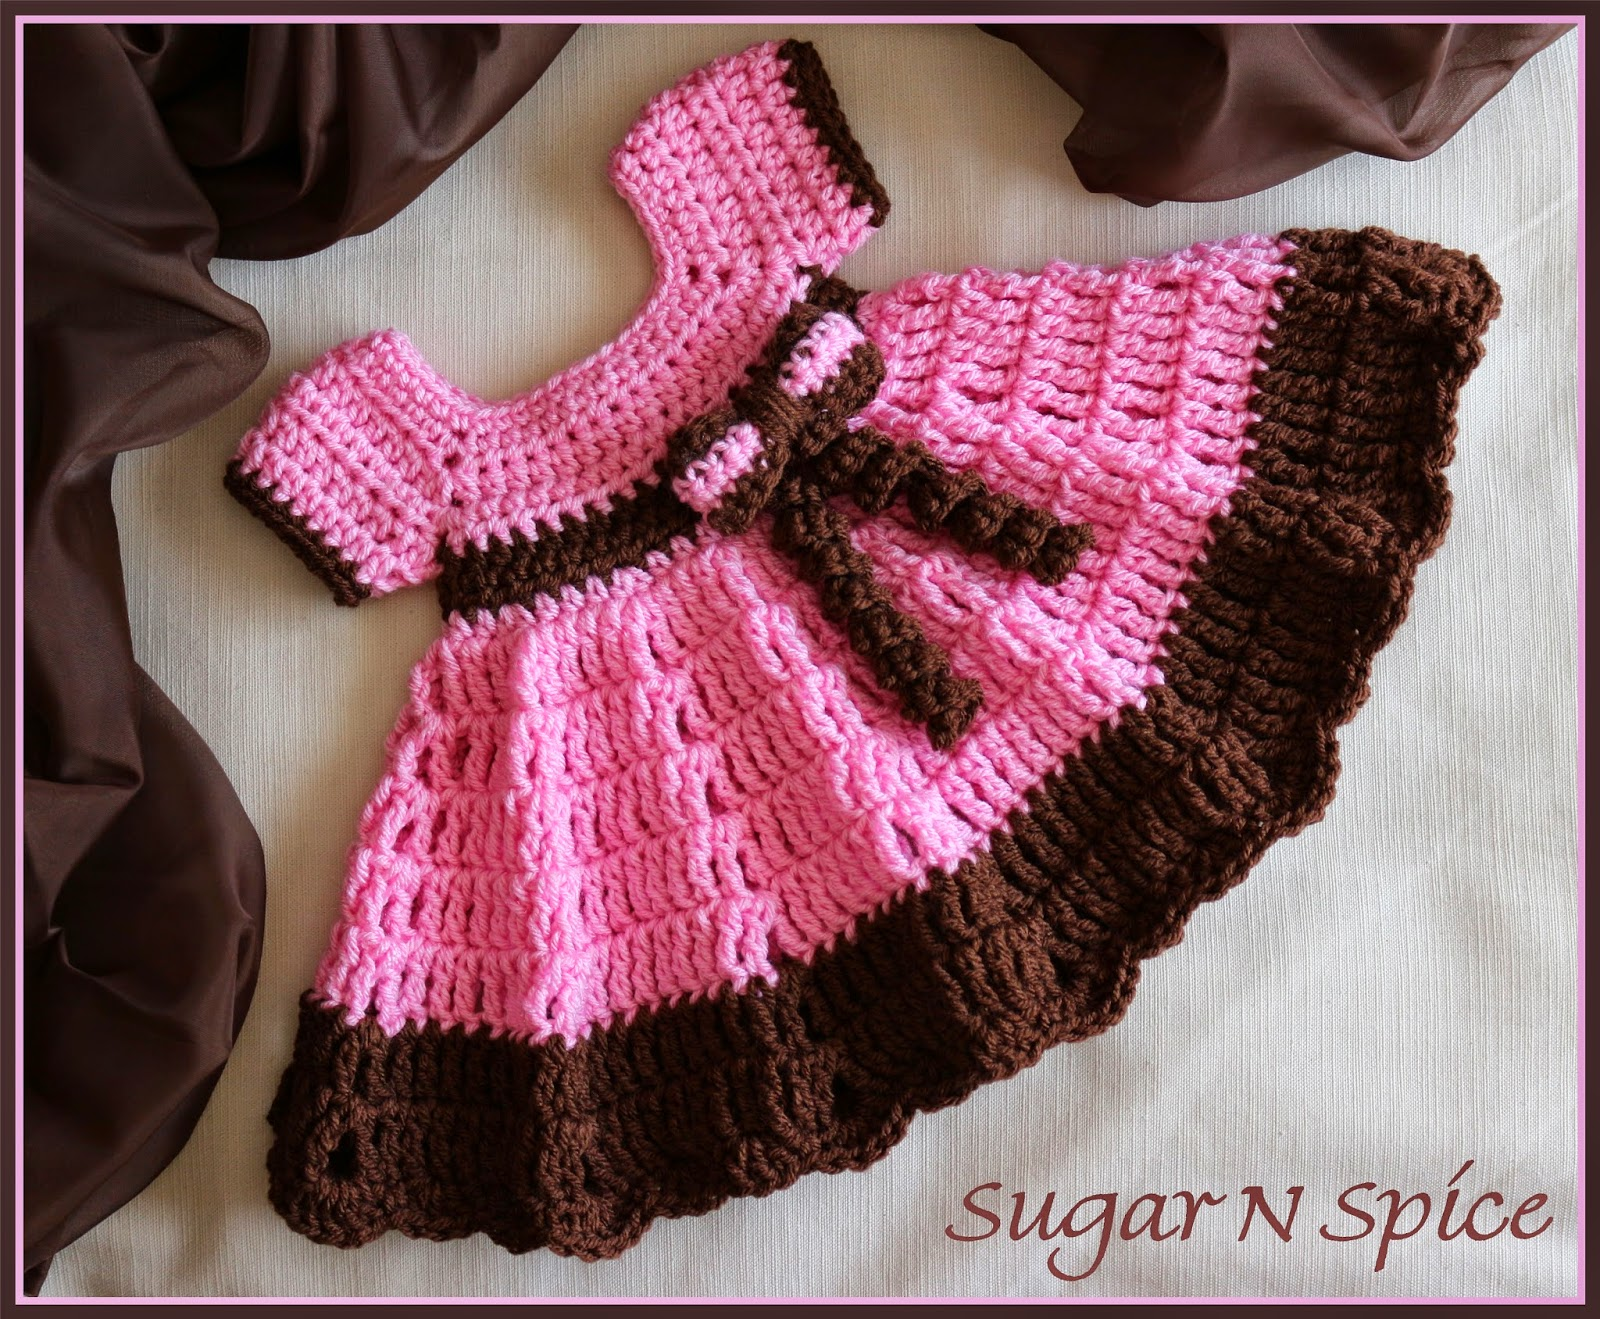 Free Crochet Pattern For Christmas Dress : Crochet Supernova: Sugar N Spice Dress ~FREE PATTERN~